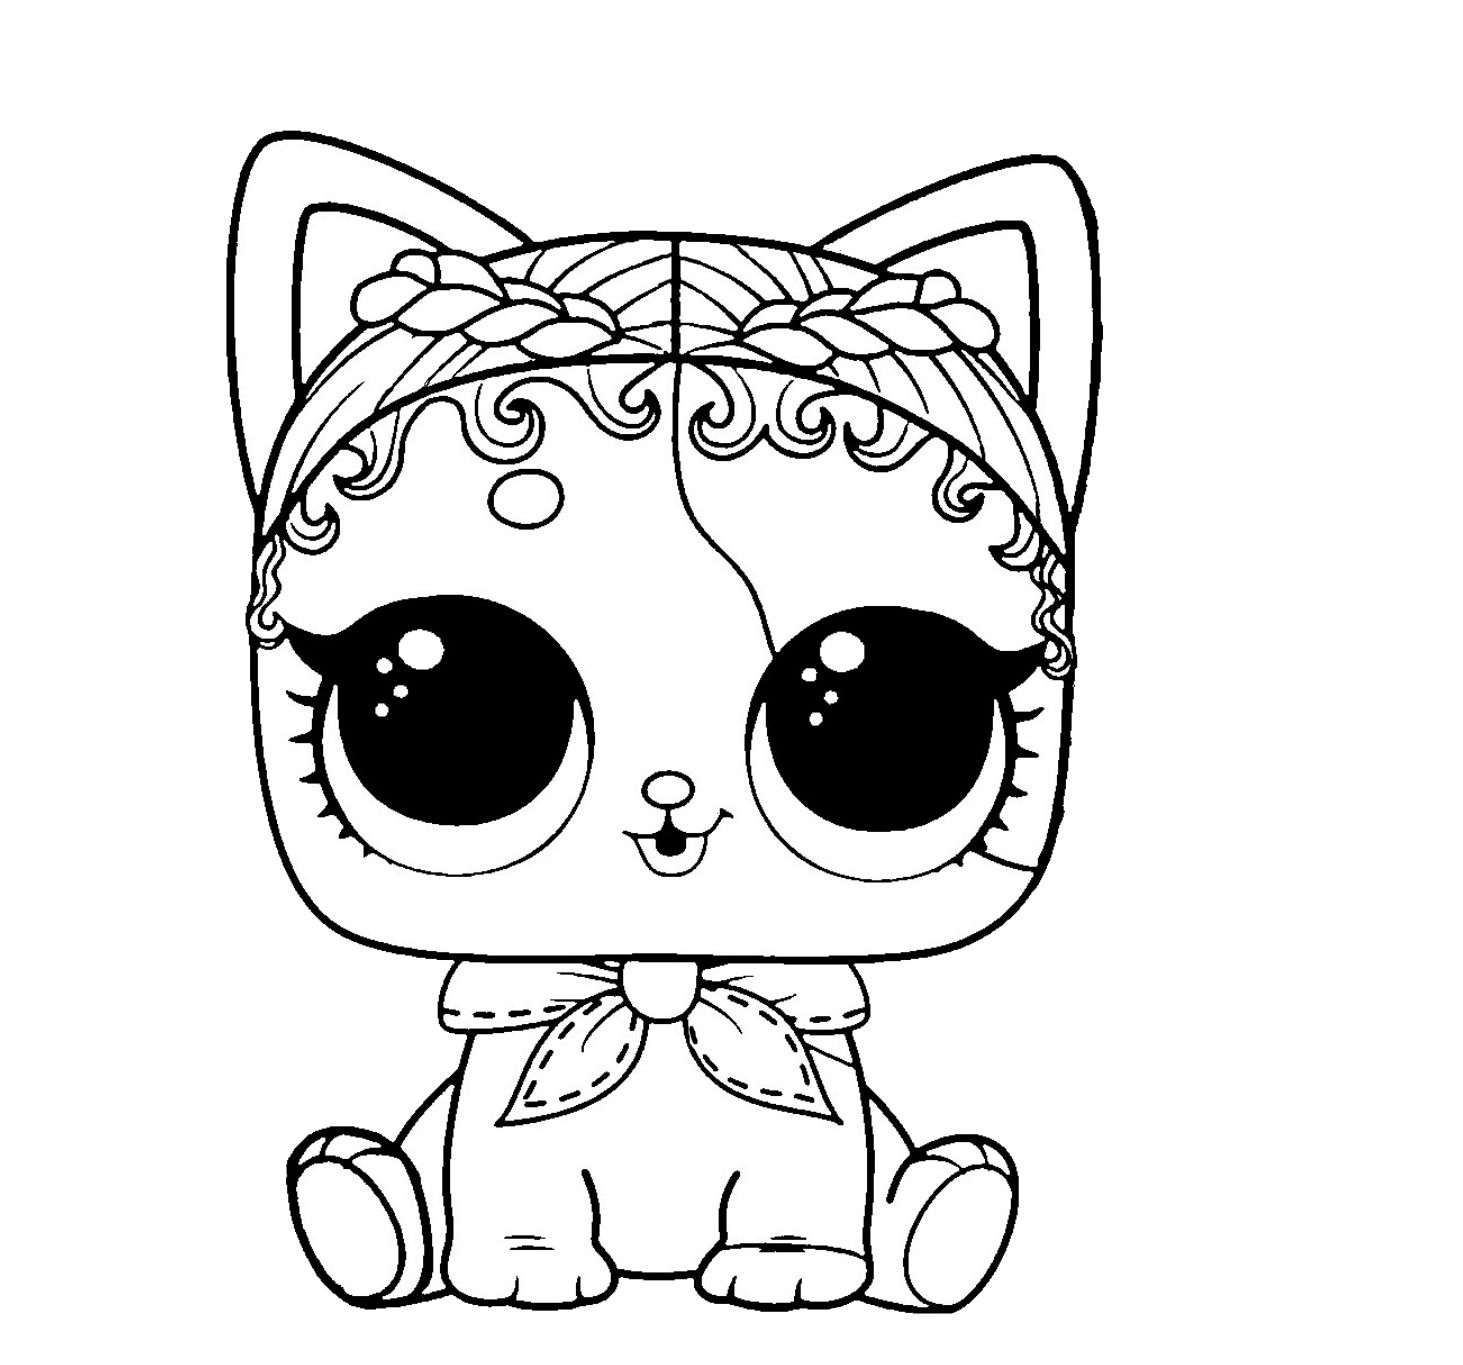 Lol Surprise Pet Coloring Purrrfect Spike Cute Coloring Pages Baby Coloring Pages Cool Coloring Pages